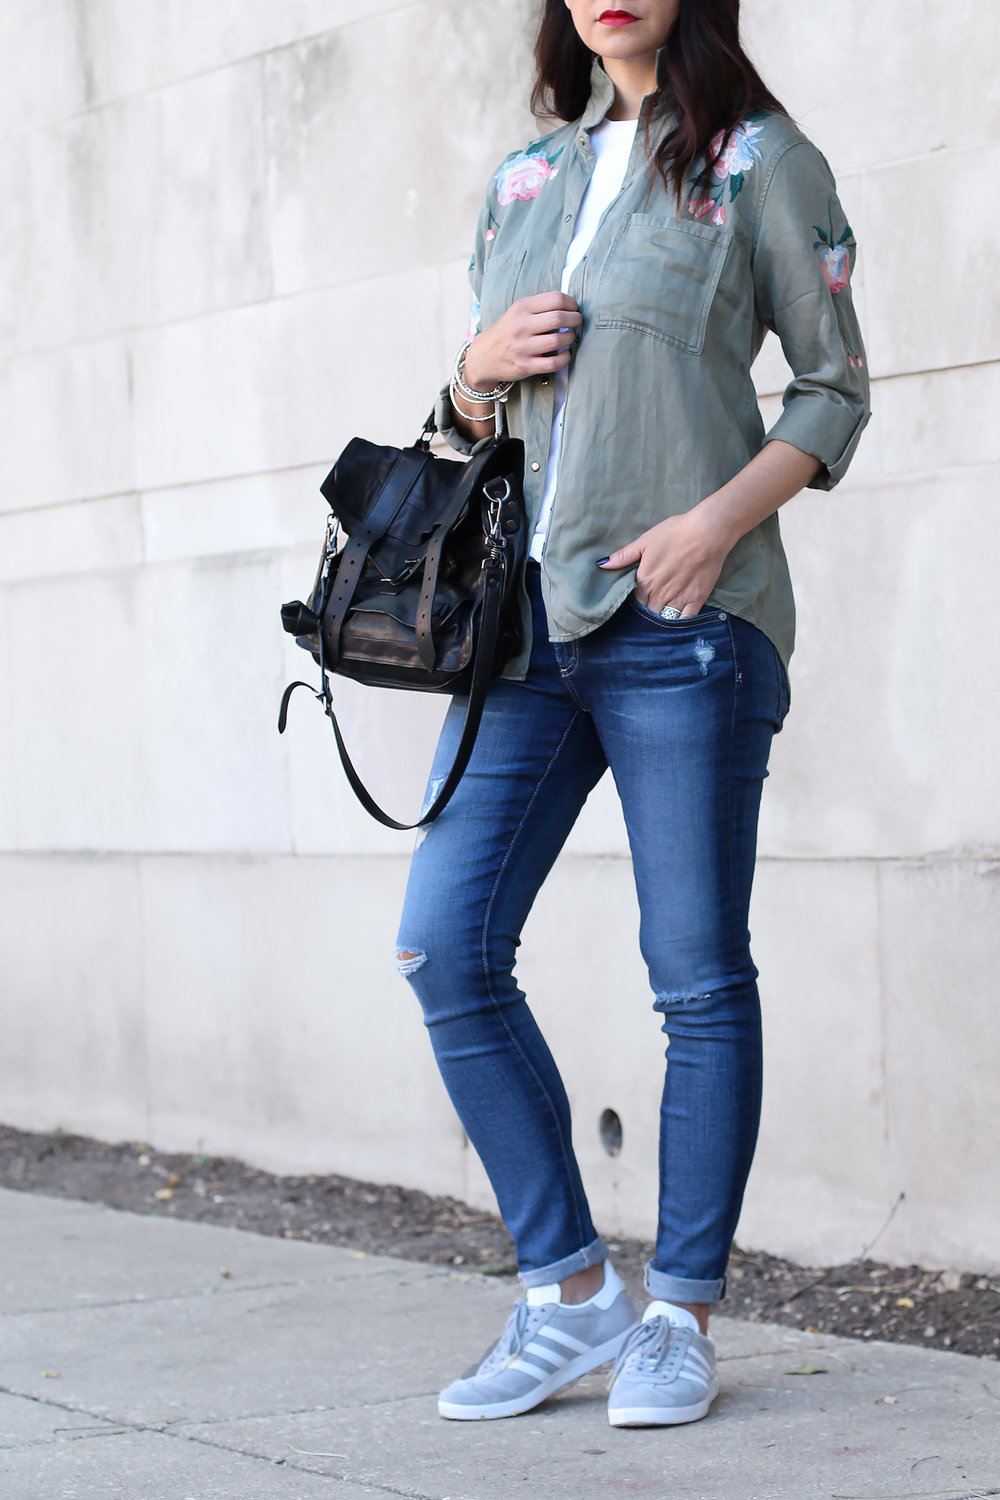 AG Jeans, Distressed Jeans Outfit